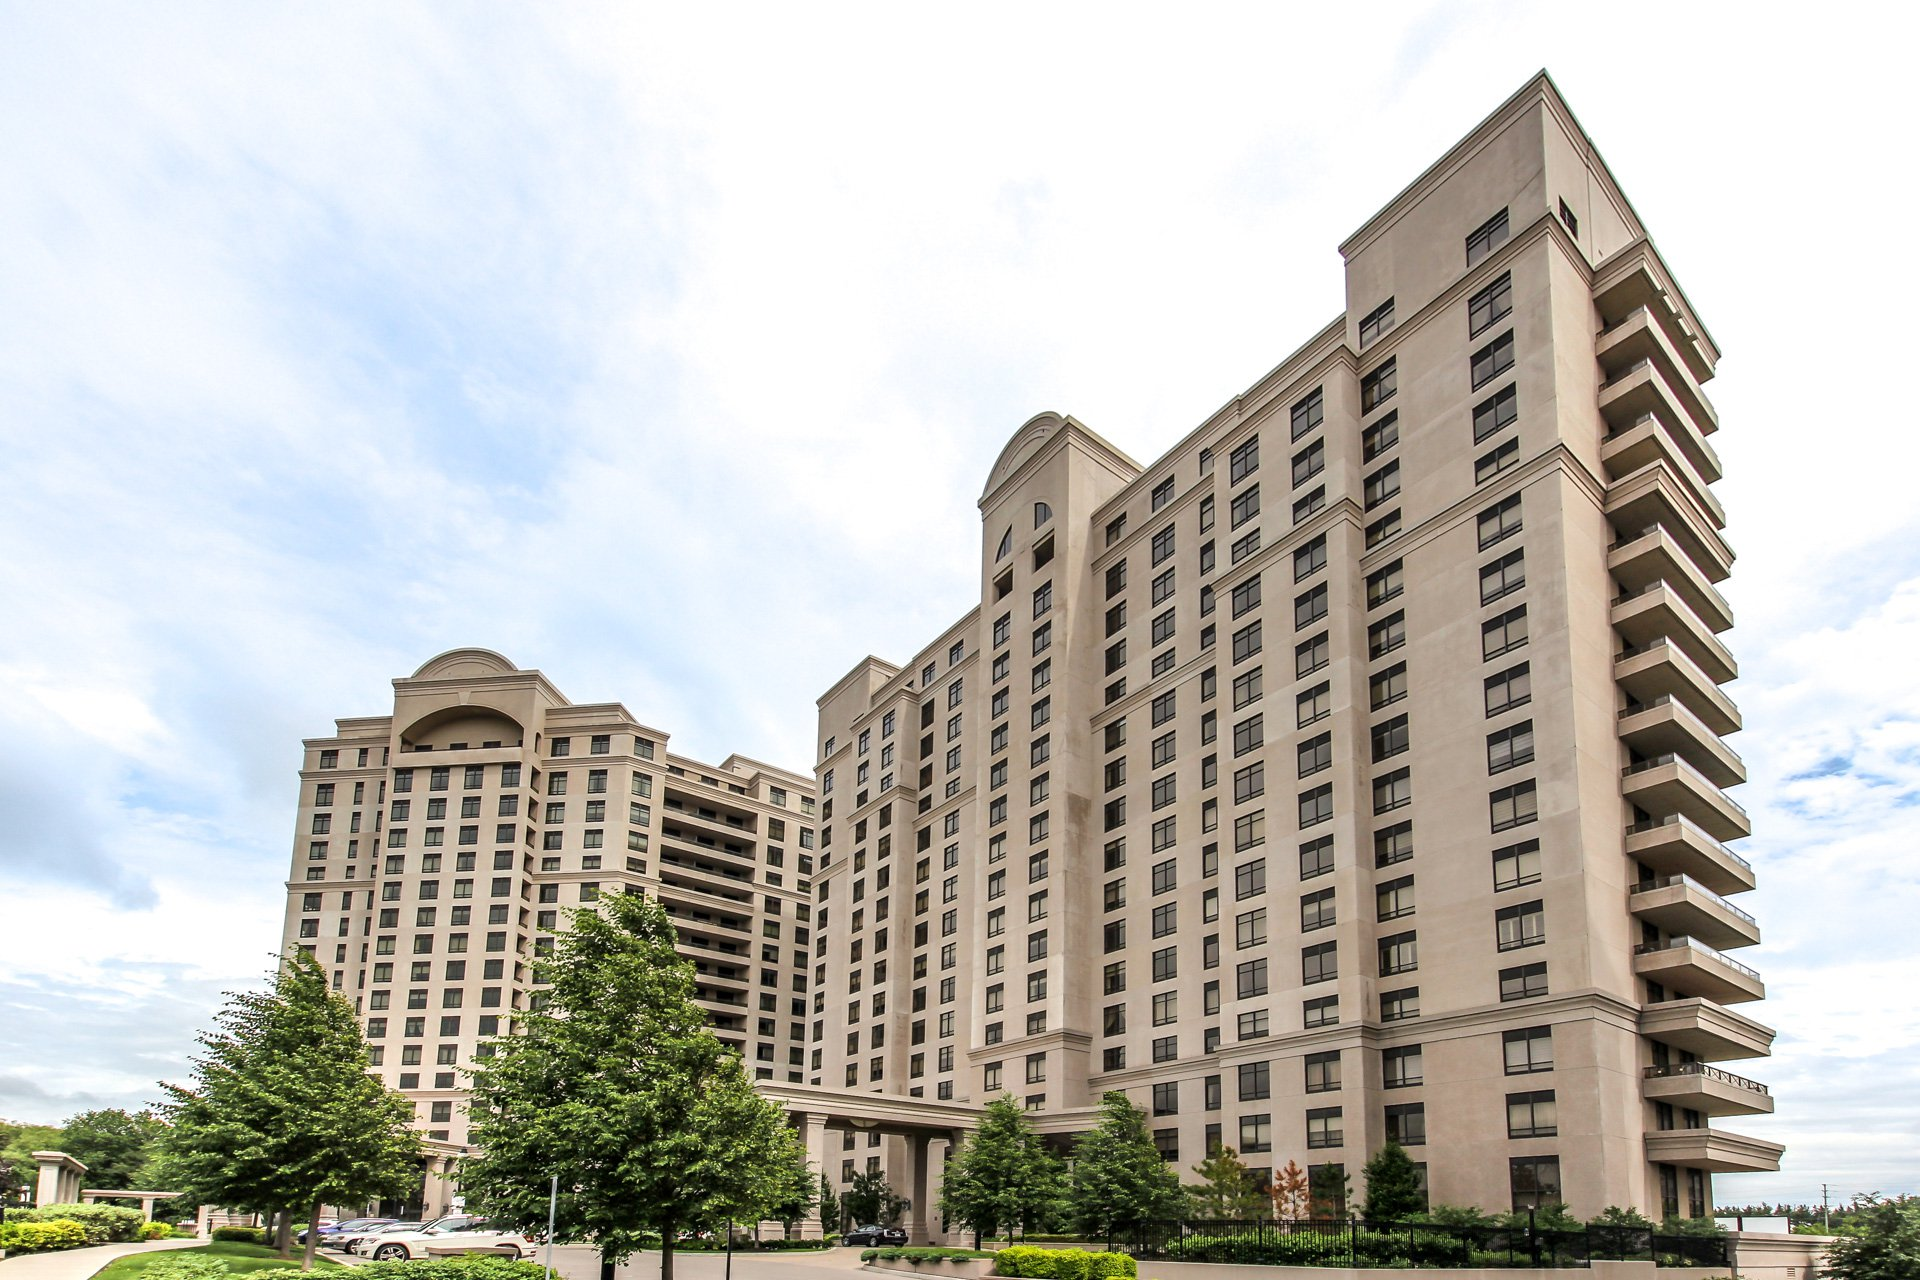 Main Photo: 9245 Jane St Unit #515 in Vaughan Bellaria Condo Marie Commisso